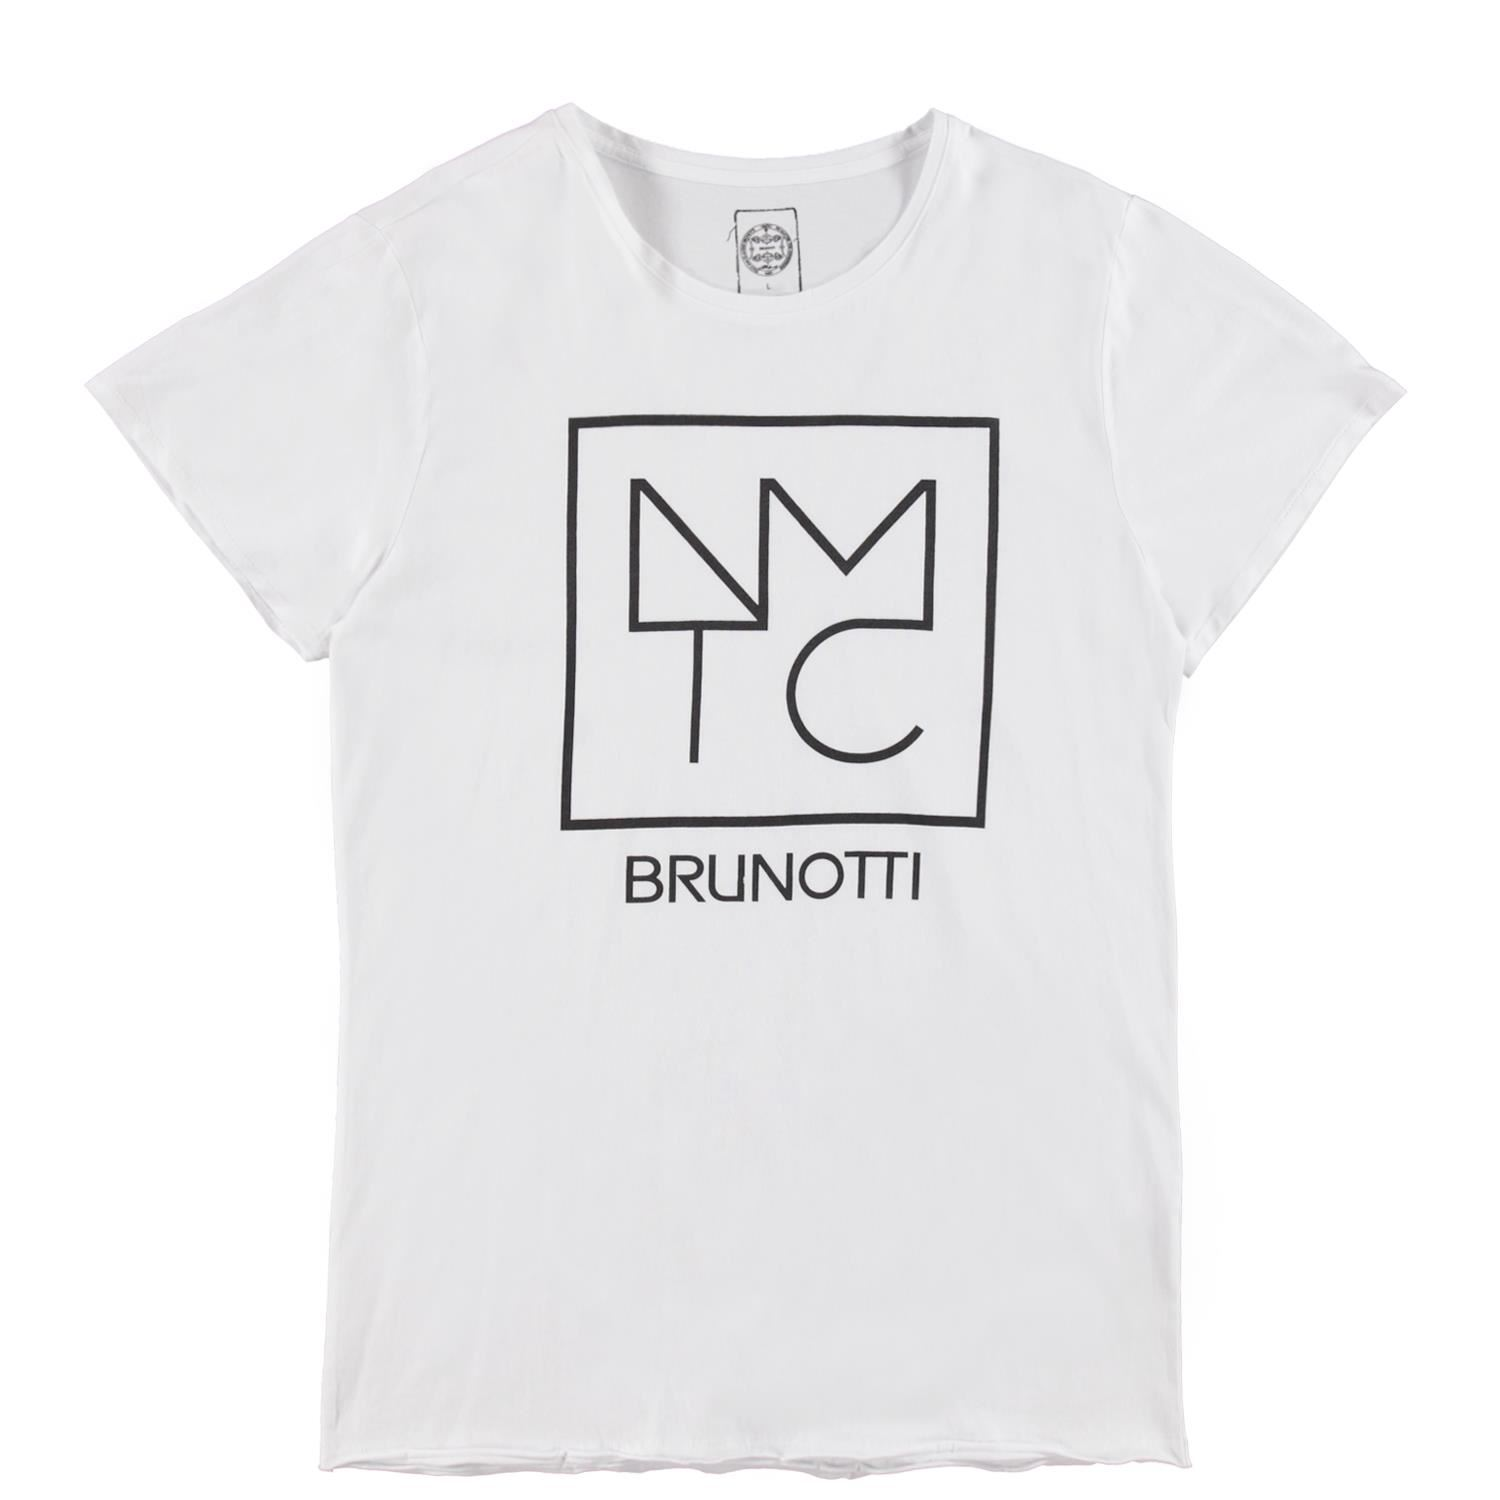 Brunotti Anemi Men T shirt